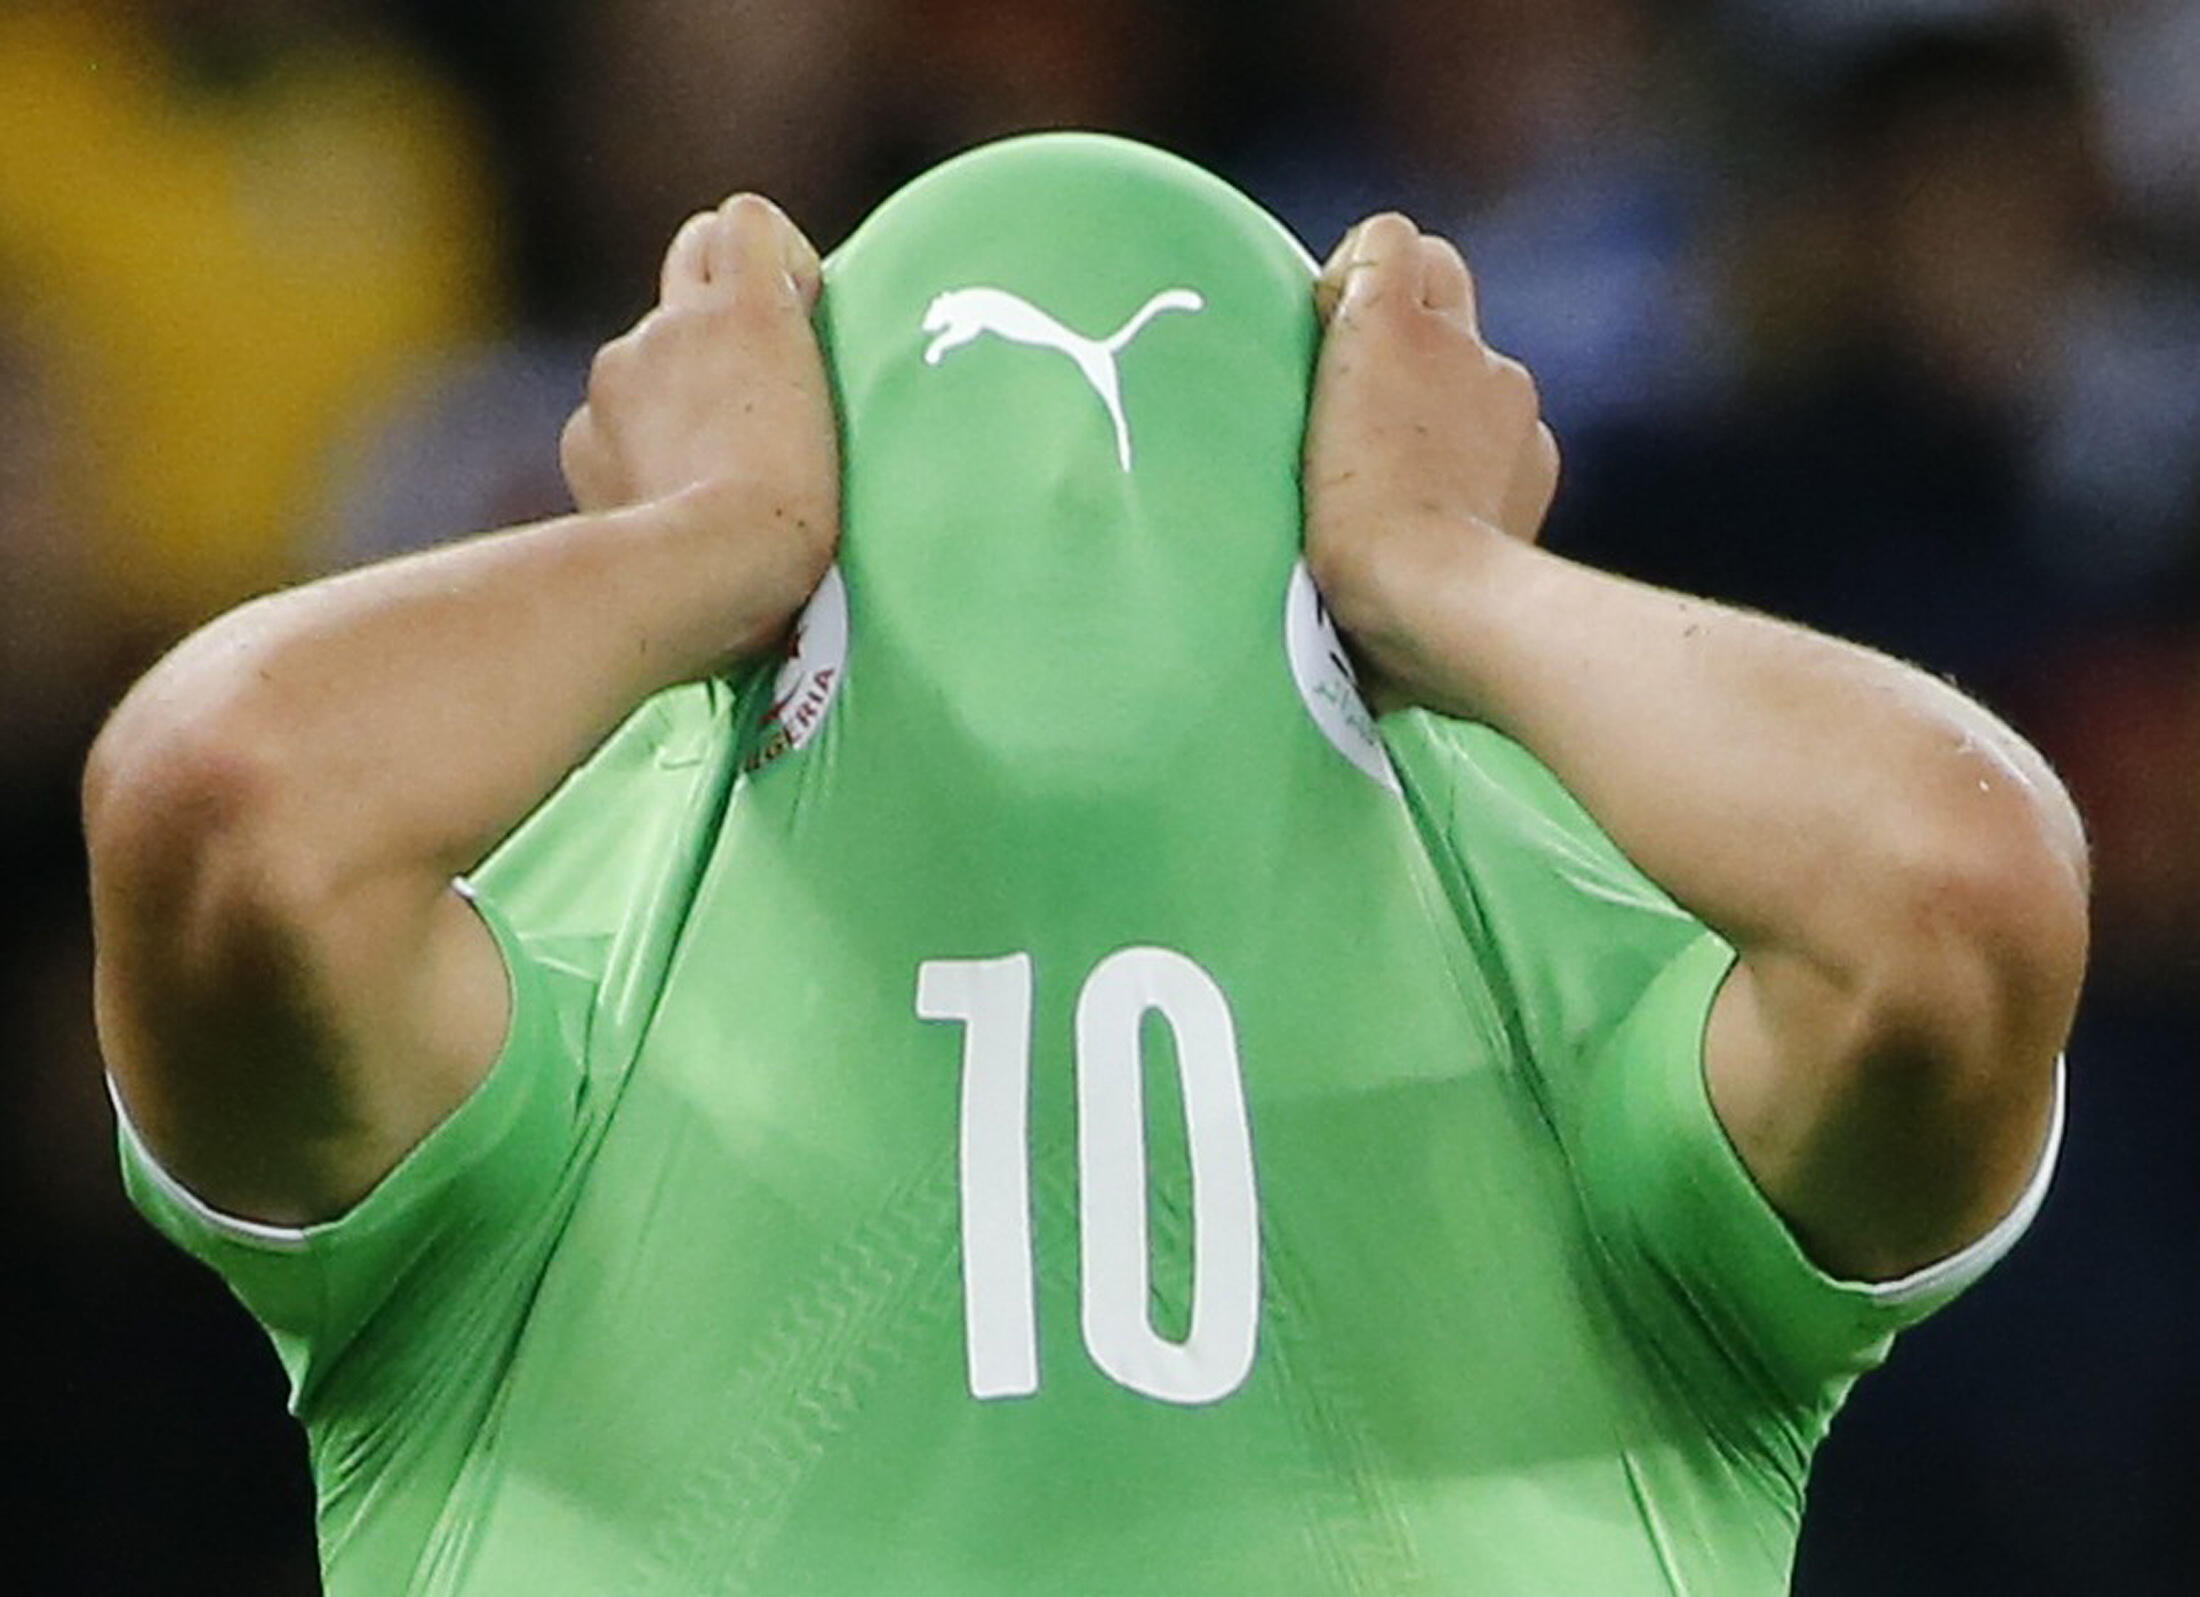 Algeria's Sofiane Feghouli covers his face as he reacts to his team's loss against Germany, Porto Alegre, 30 June 2014.